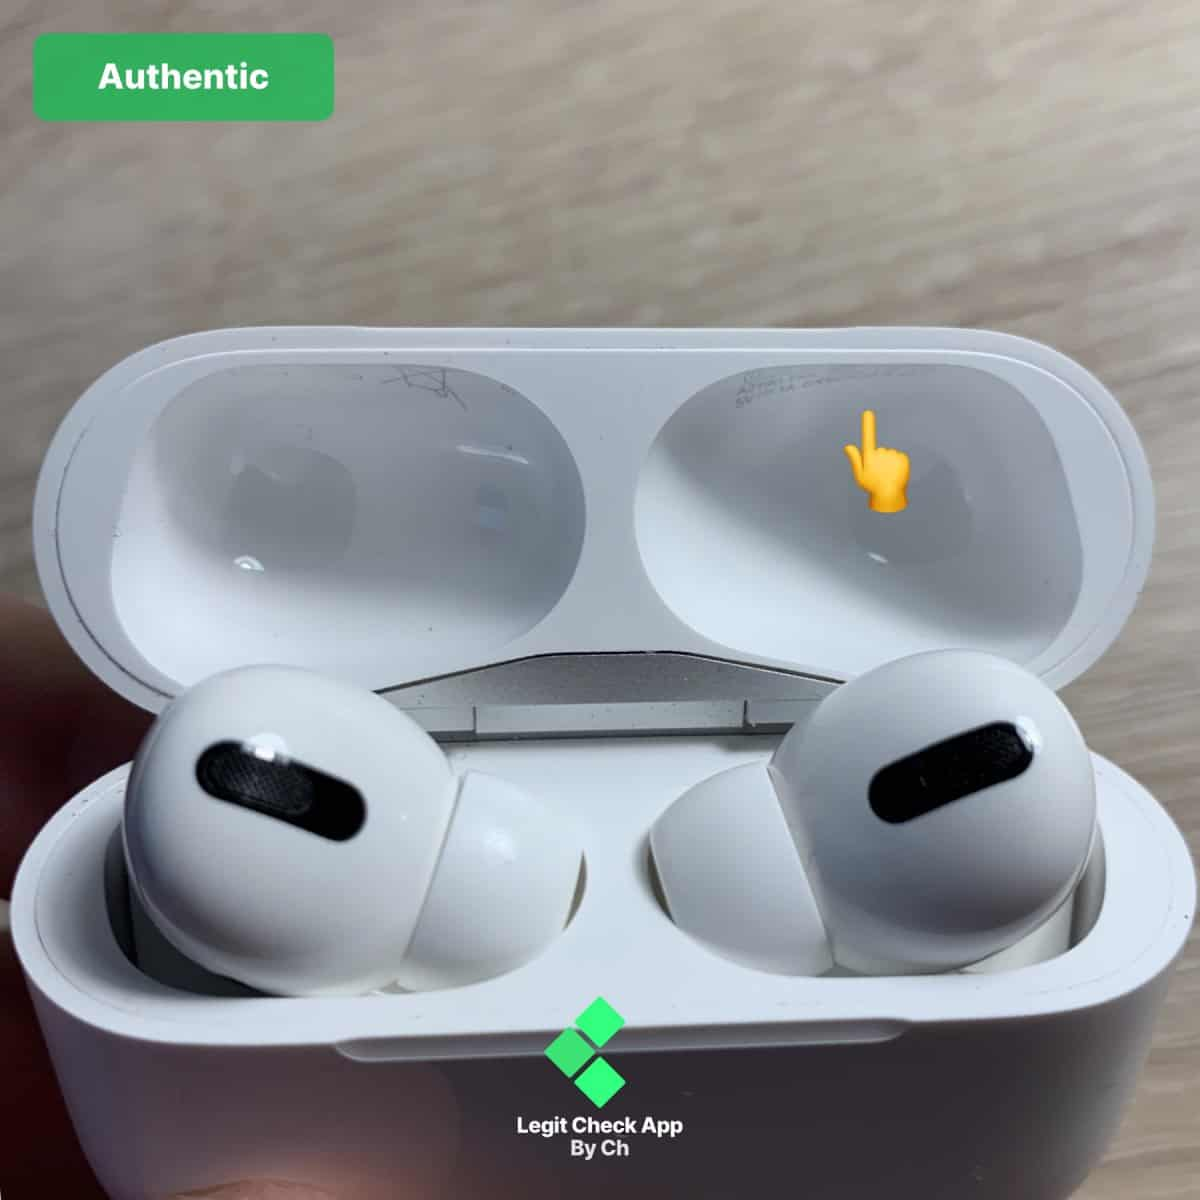 Apple Airpods Pro Real Vs Fake How To Spot Fake Airpods Pro